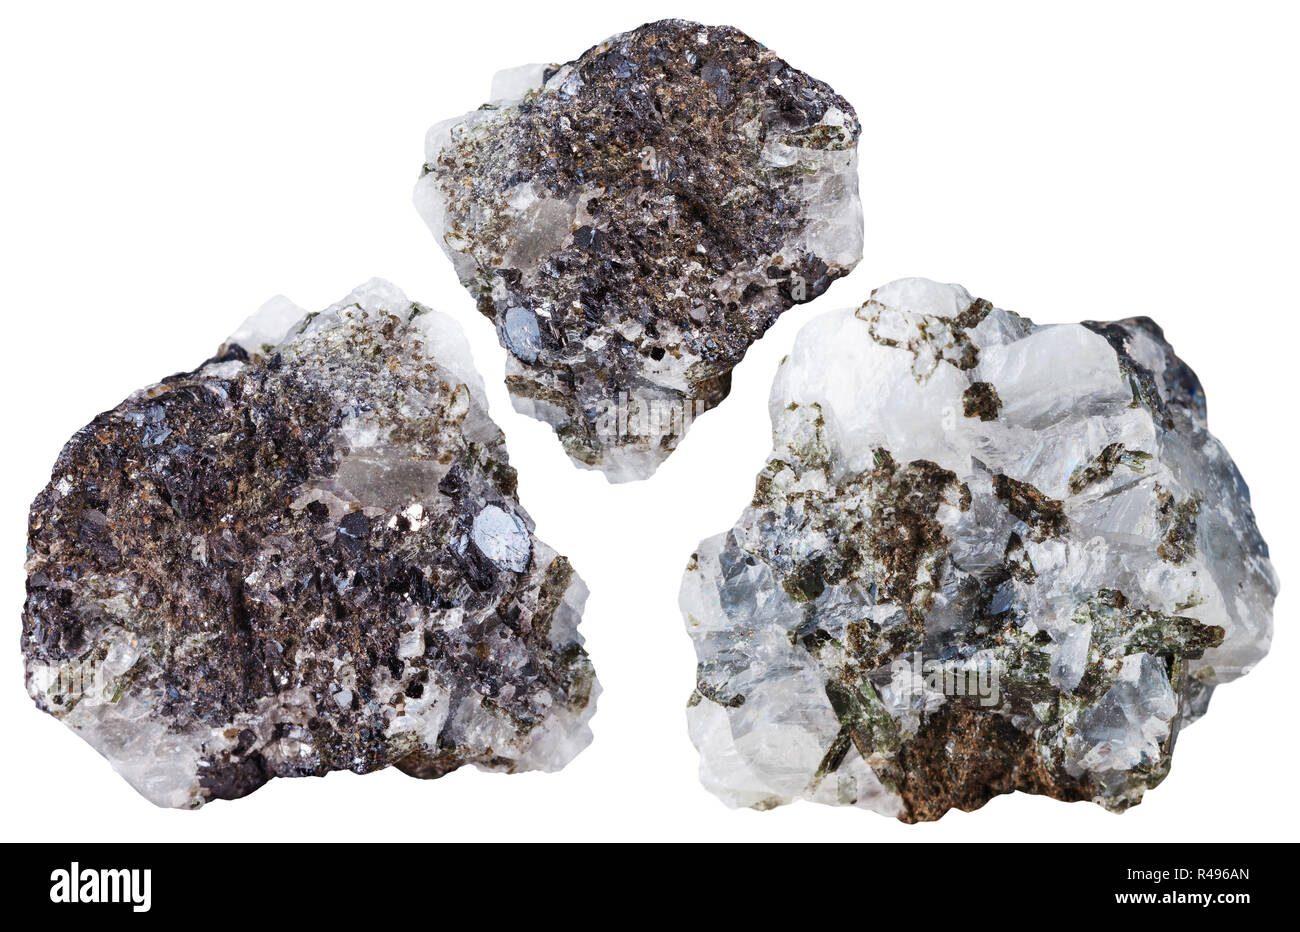 three pieces of Sphalerite mineral stone - Stock Image